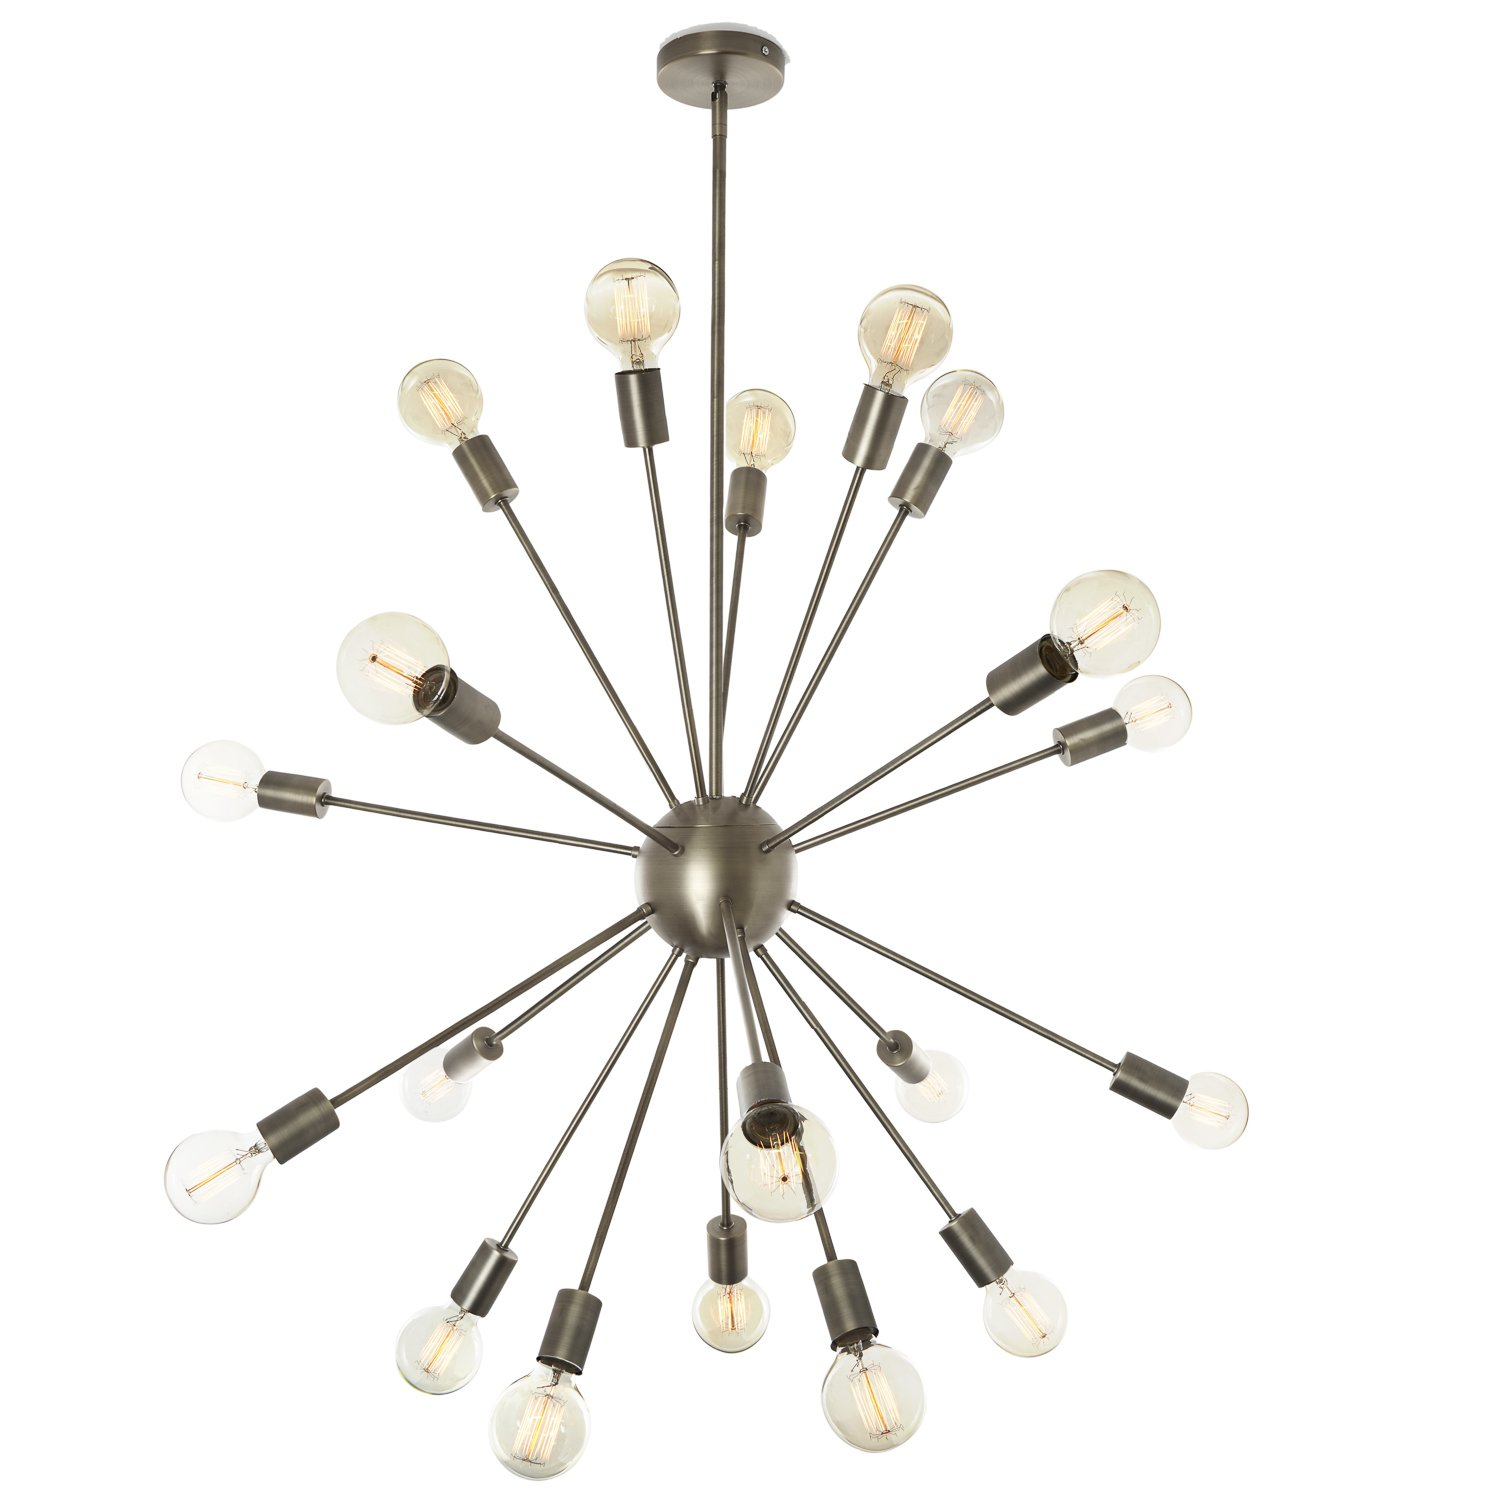 20 Light Sputnik Chandelier Modern Satellite Style Pewter